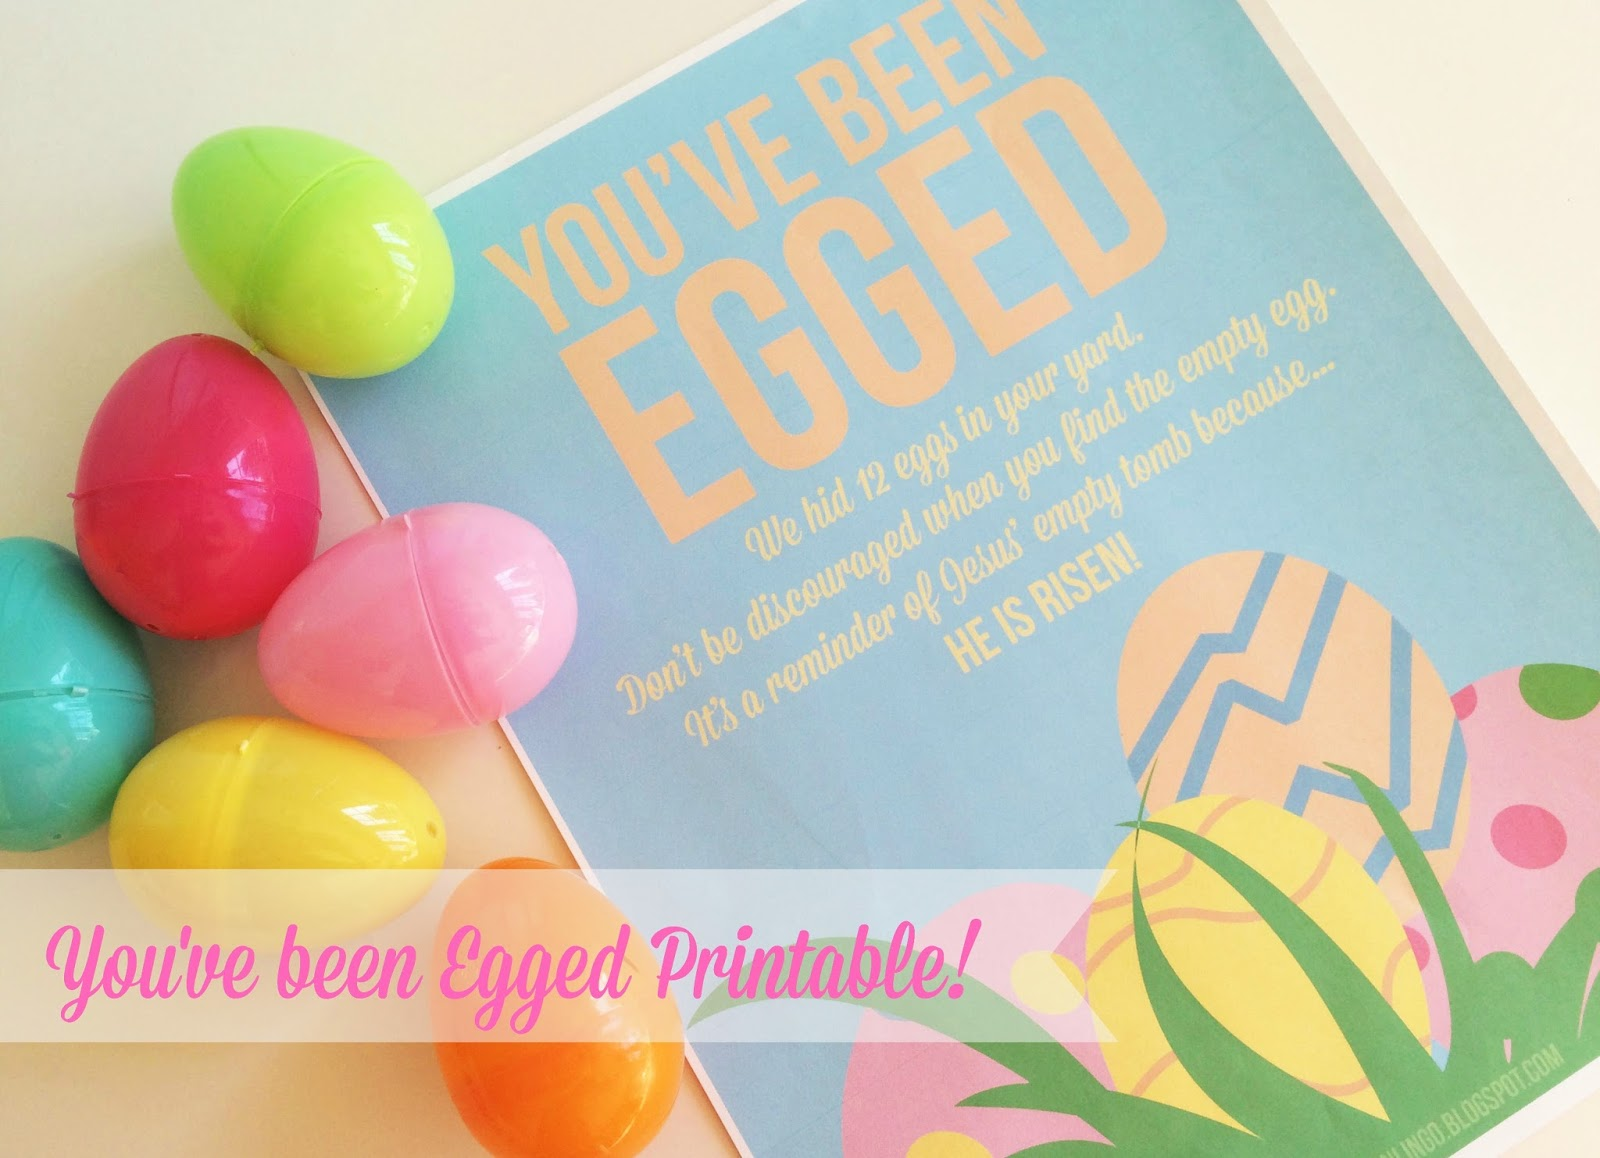 photo relating to You've Been Egged Printable called The Larson Lingo: Youve Been Egged! No cost Printable